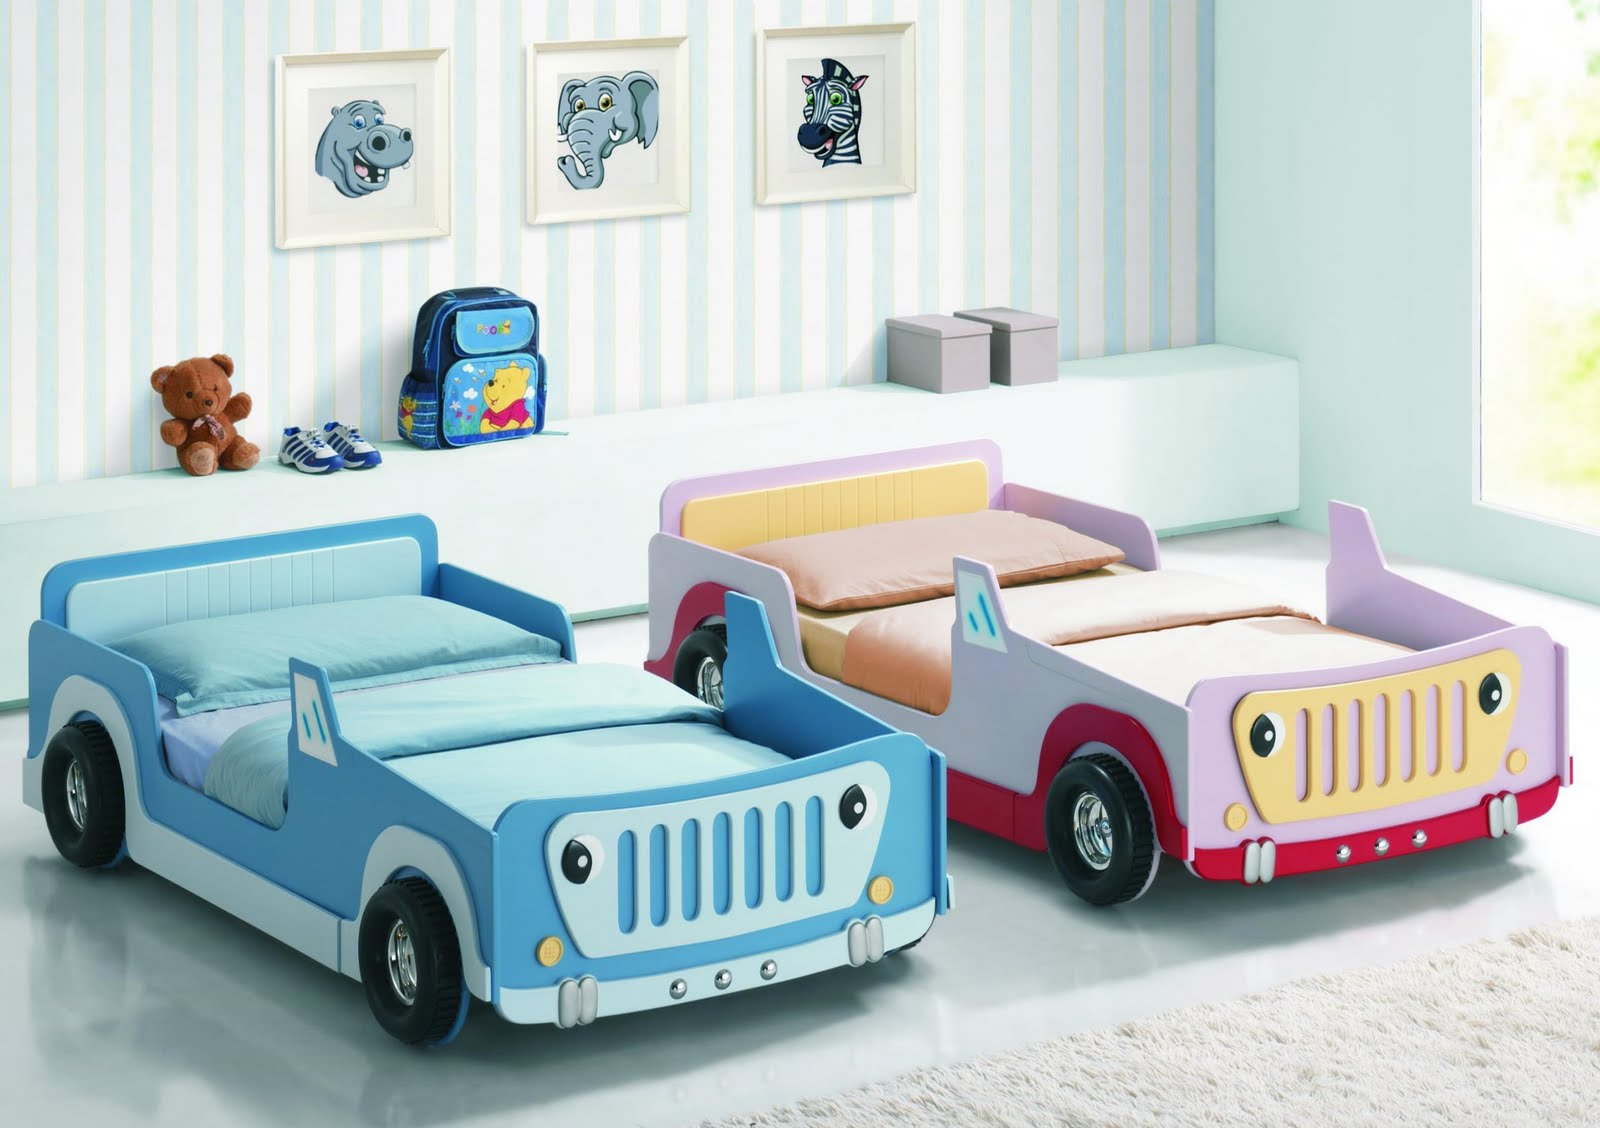 The Joseph Jeep Bed Is A Colourful Childrens Which Will Help Bedtimes Become More Enticing With Real Look Wheels For Children To